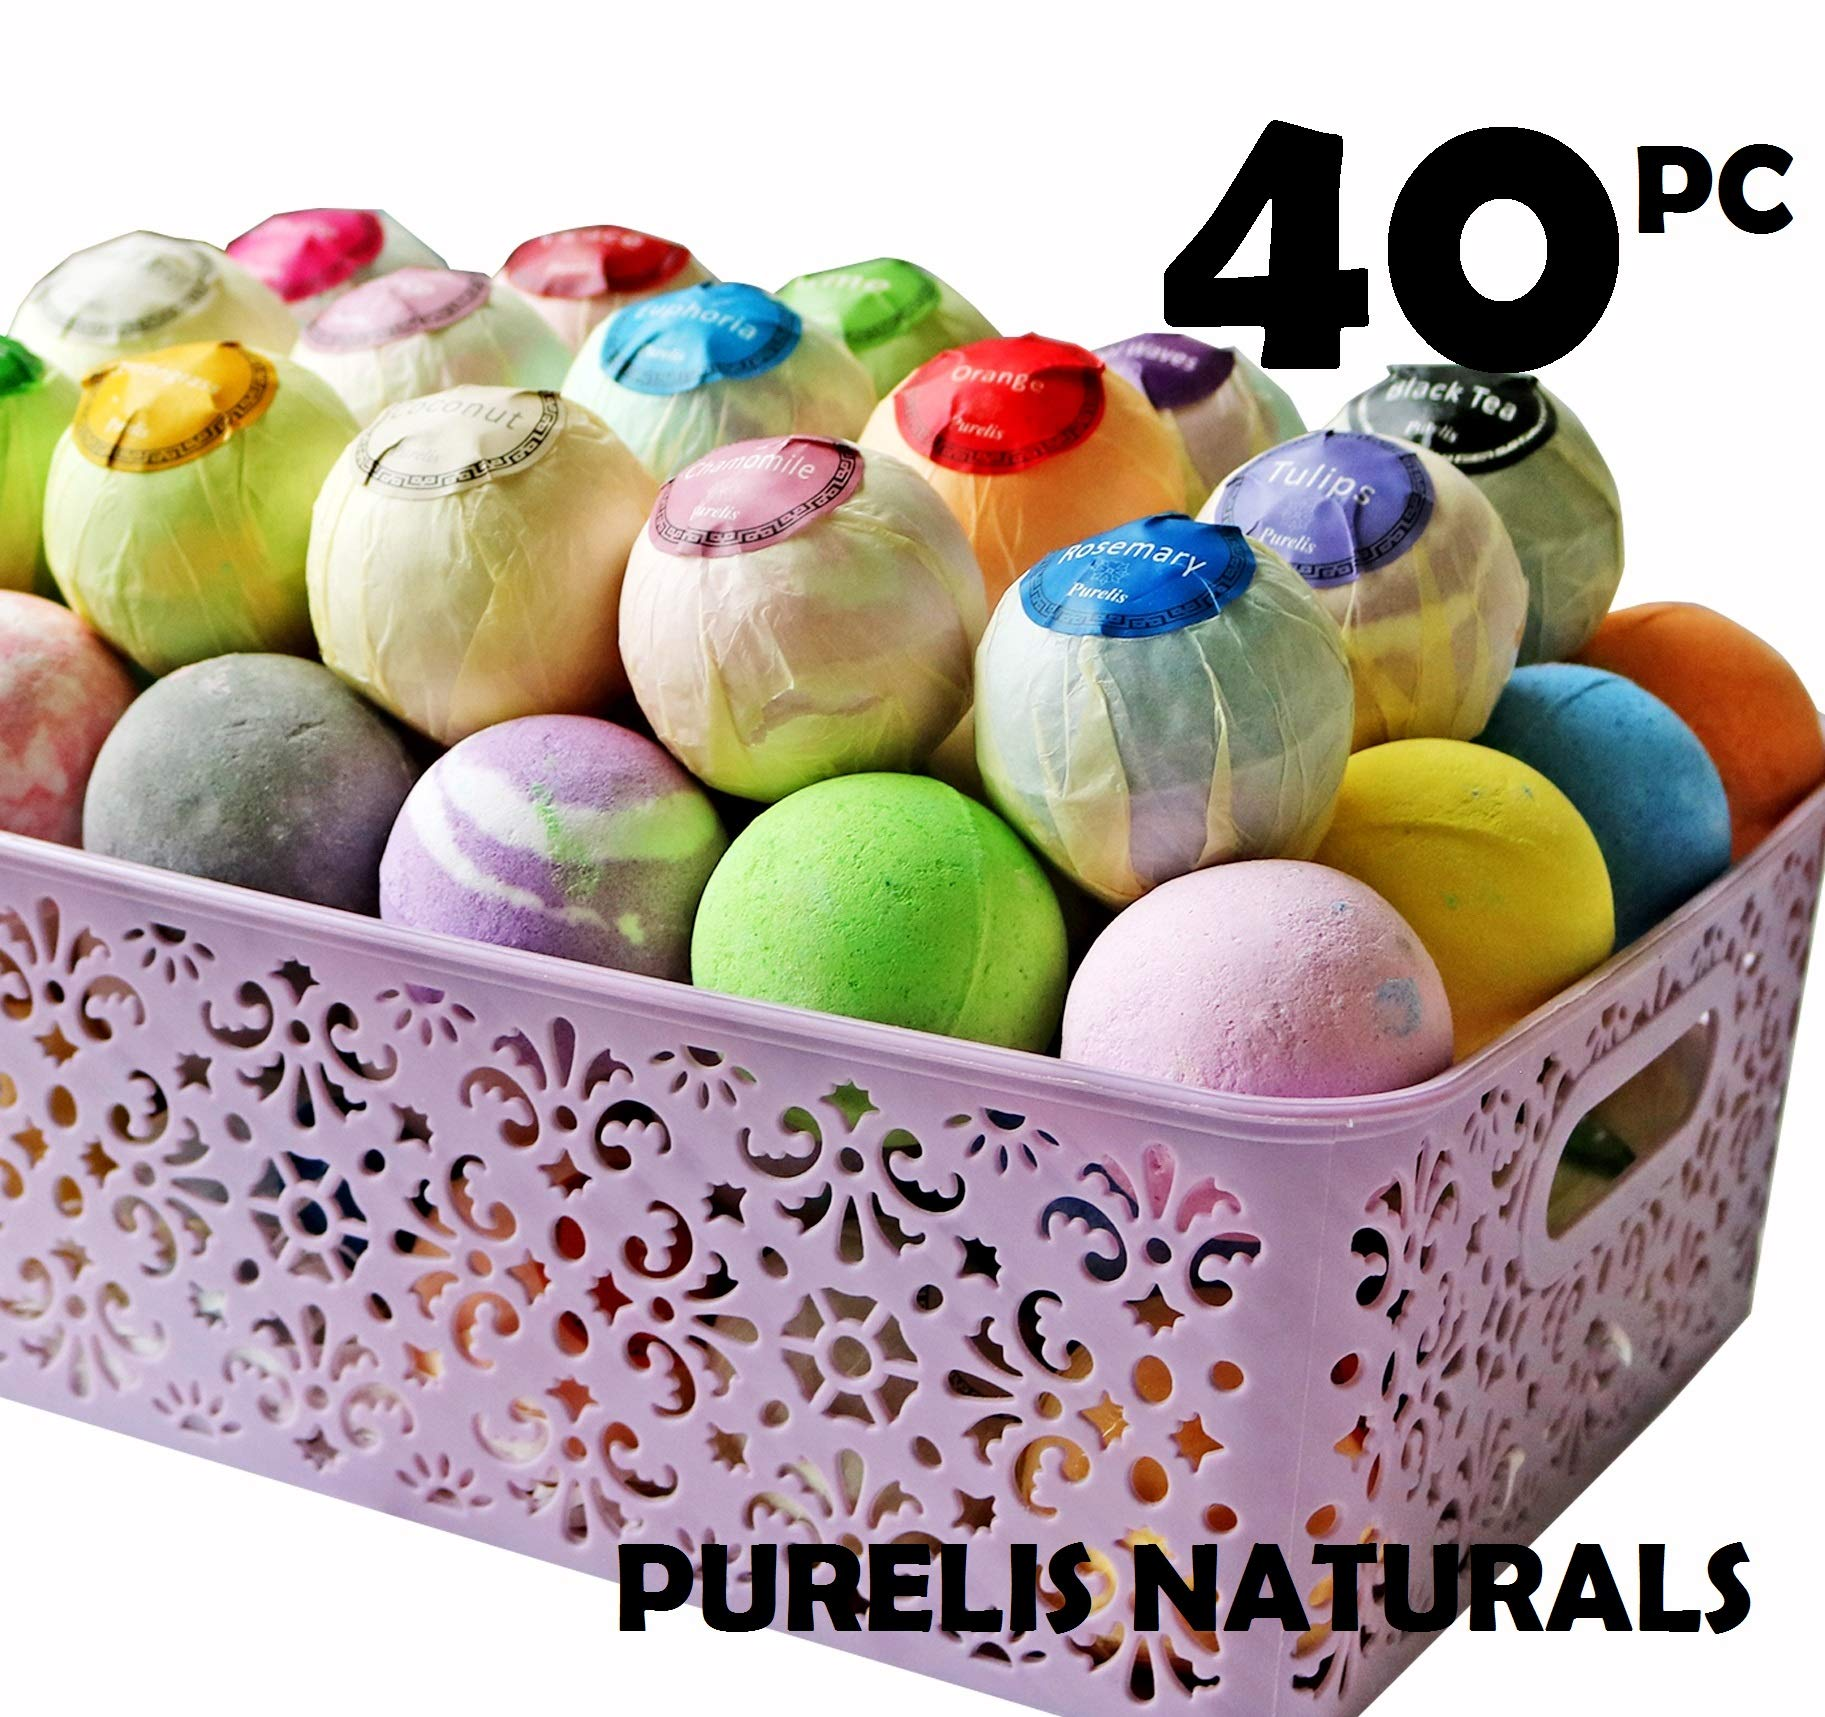 Bath Bombs Gift Baskets for Women! Basket of 40 Moisturizing Spa Fizzers Lush Bombs, 40 Unique Organic Bath Bombs Set. Luxury Spa Basket to store in. Gift Idea for Wife, Mom, Girl Friend, Party Favors